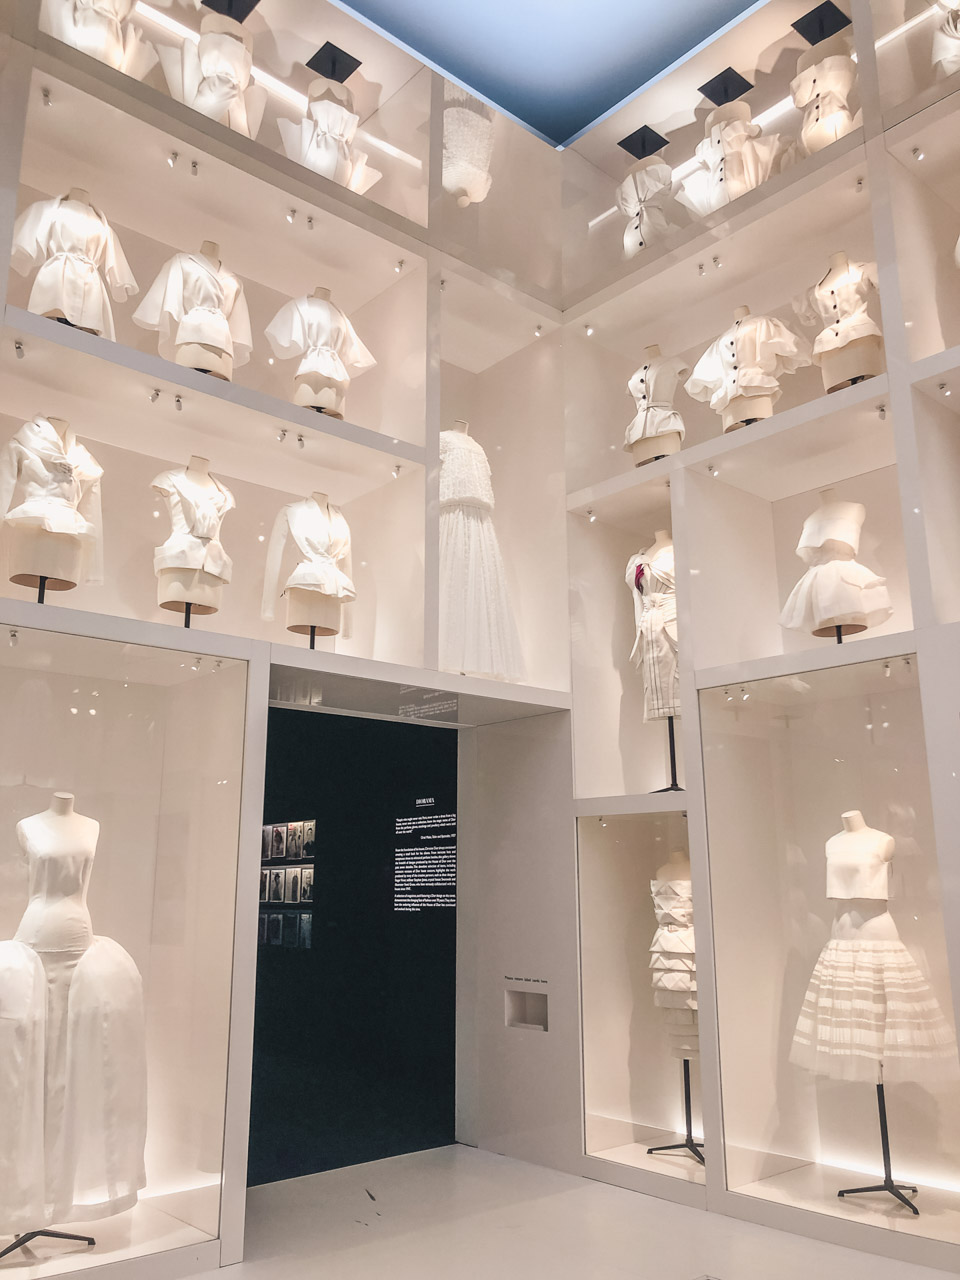 A floor-to-ceiling display of white garment prototypes at a Dior atelier at the Victoria and Albert Museum in London